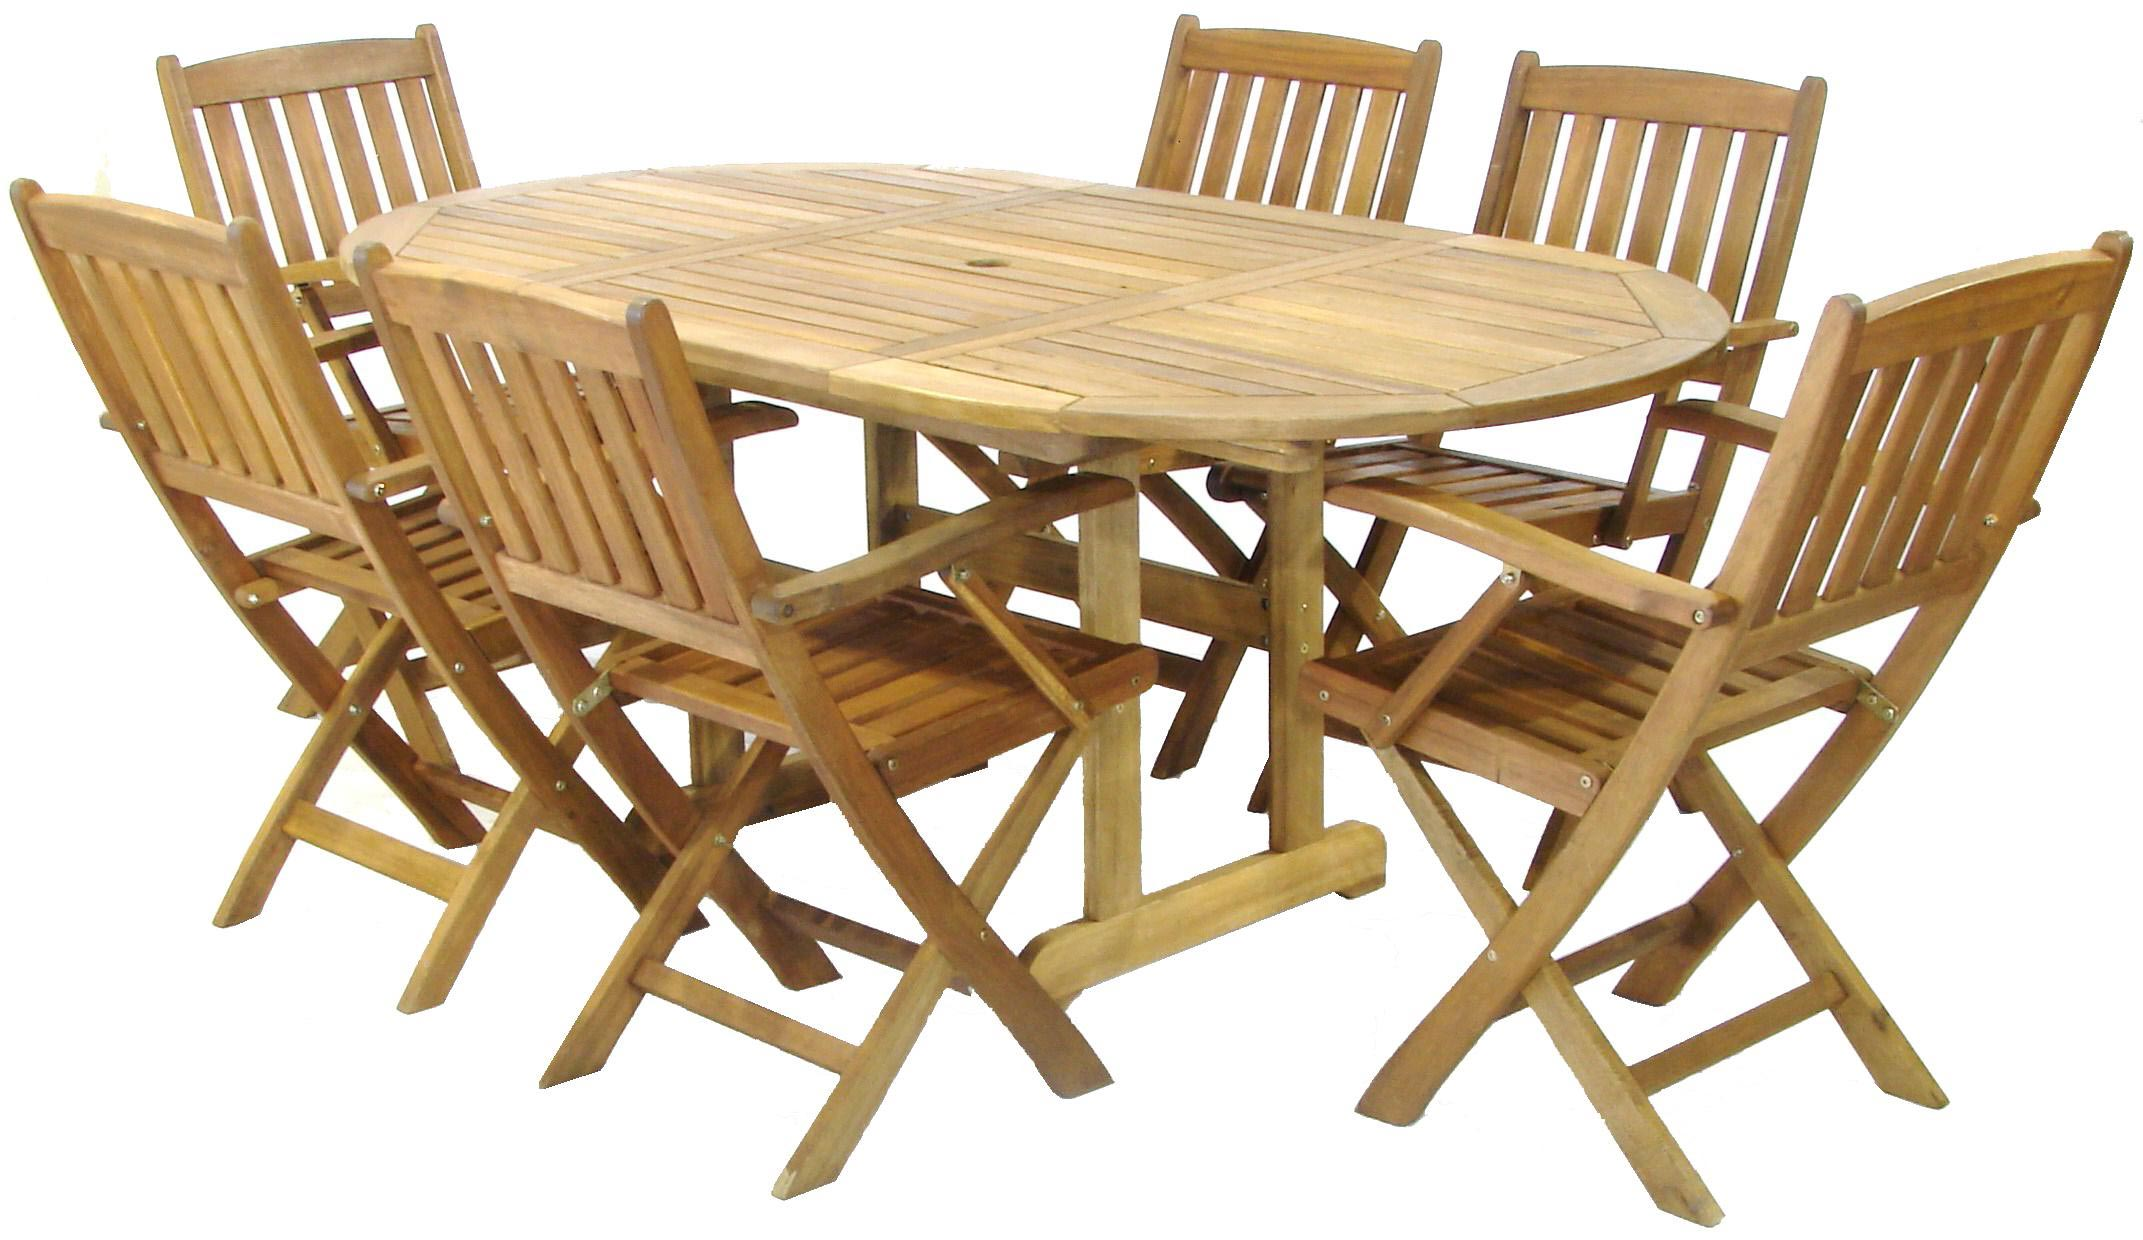 https://www.firstfurniture.co.uk/pub/media/catalog/product/t/u/turnbury-set.jpg